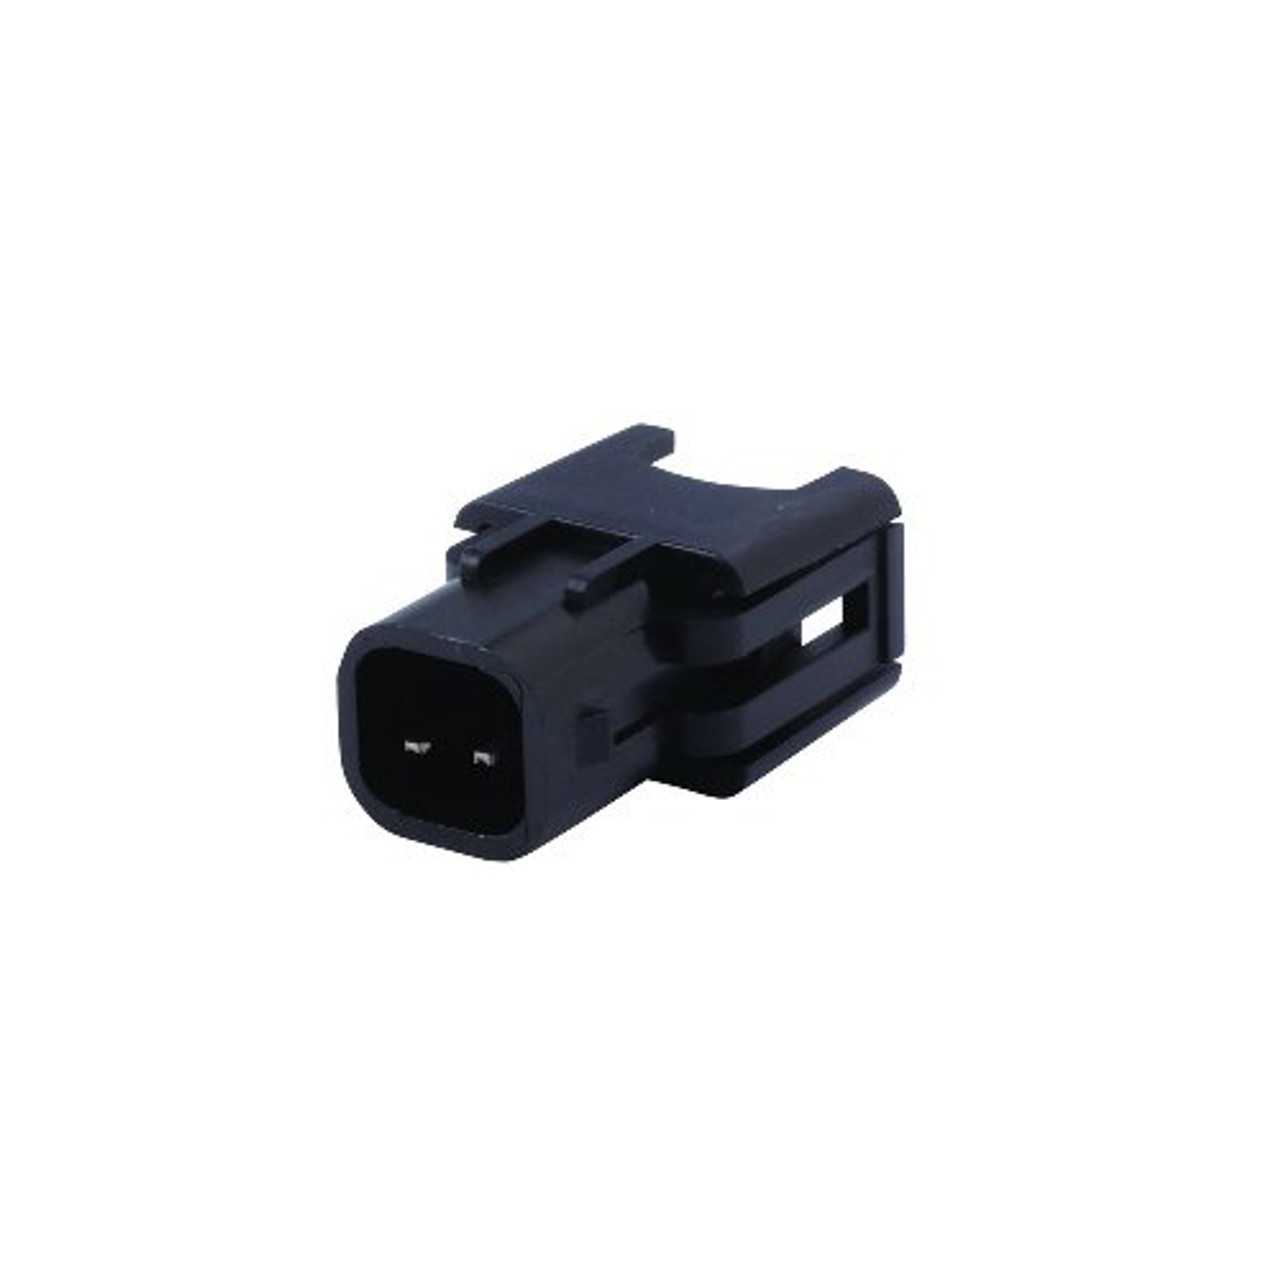 NEW $4.99 Minitimer EV-1 Electrical Connector Pigtails Bosch-type